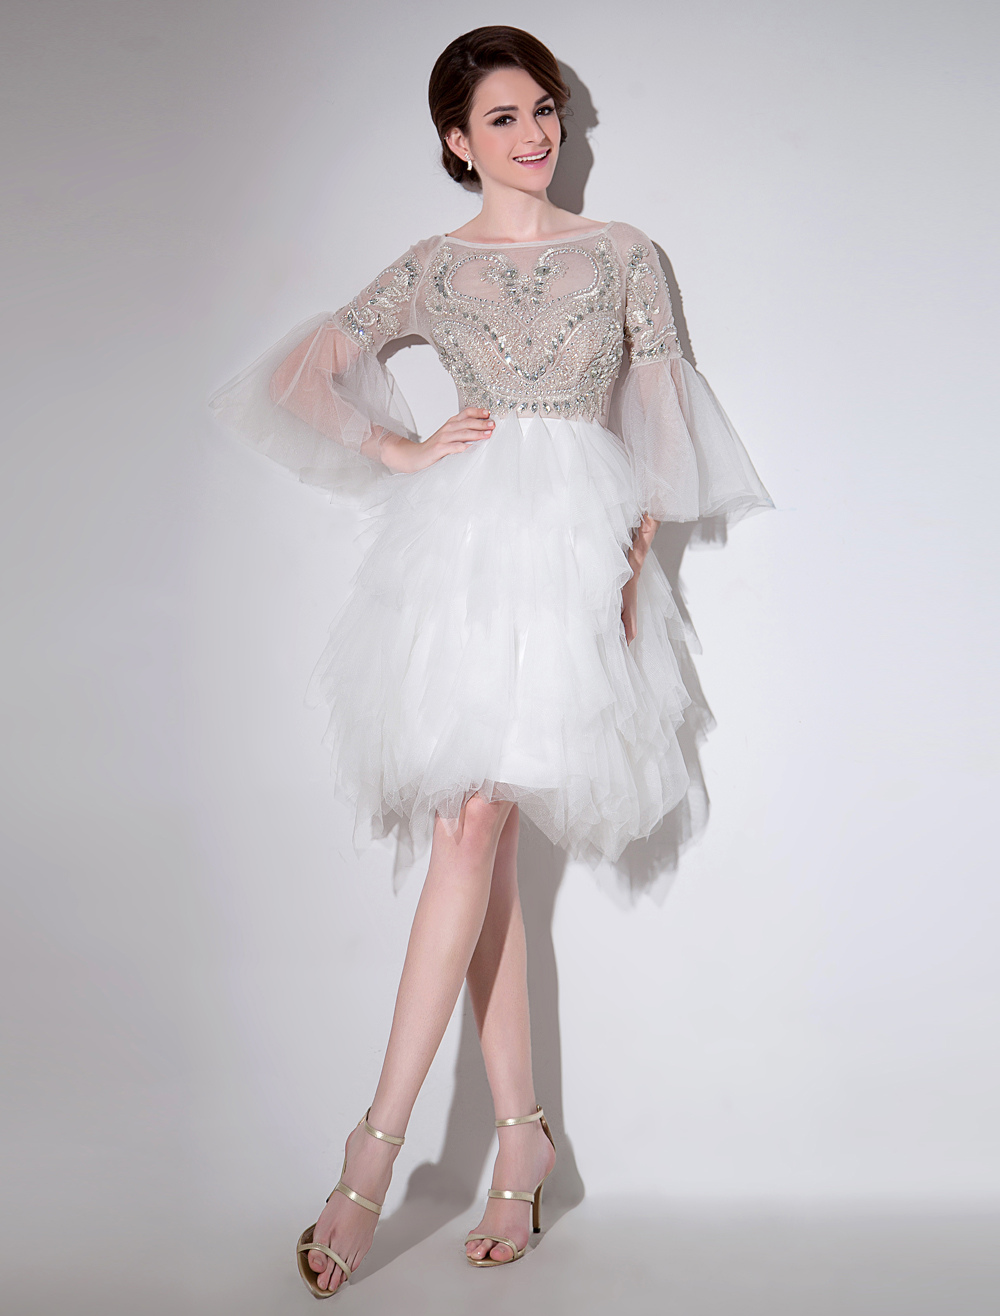 Ivory A-line Bateau Neck Rhinestone Tulle Cocktail Dress with 3/4 Length Sleeves Milanoo